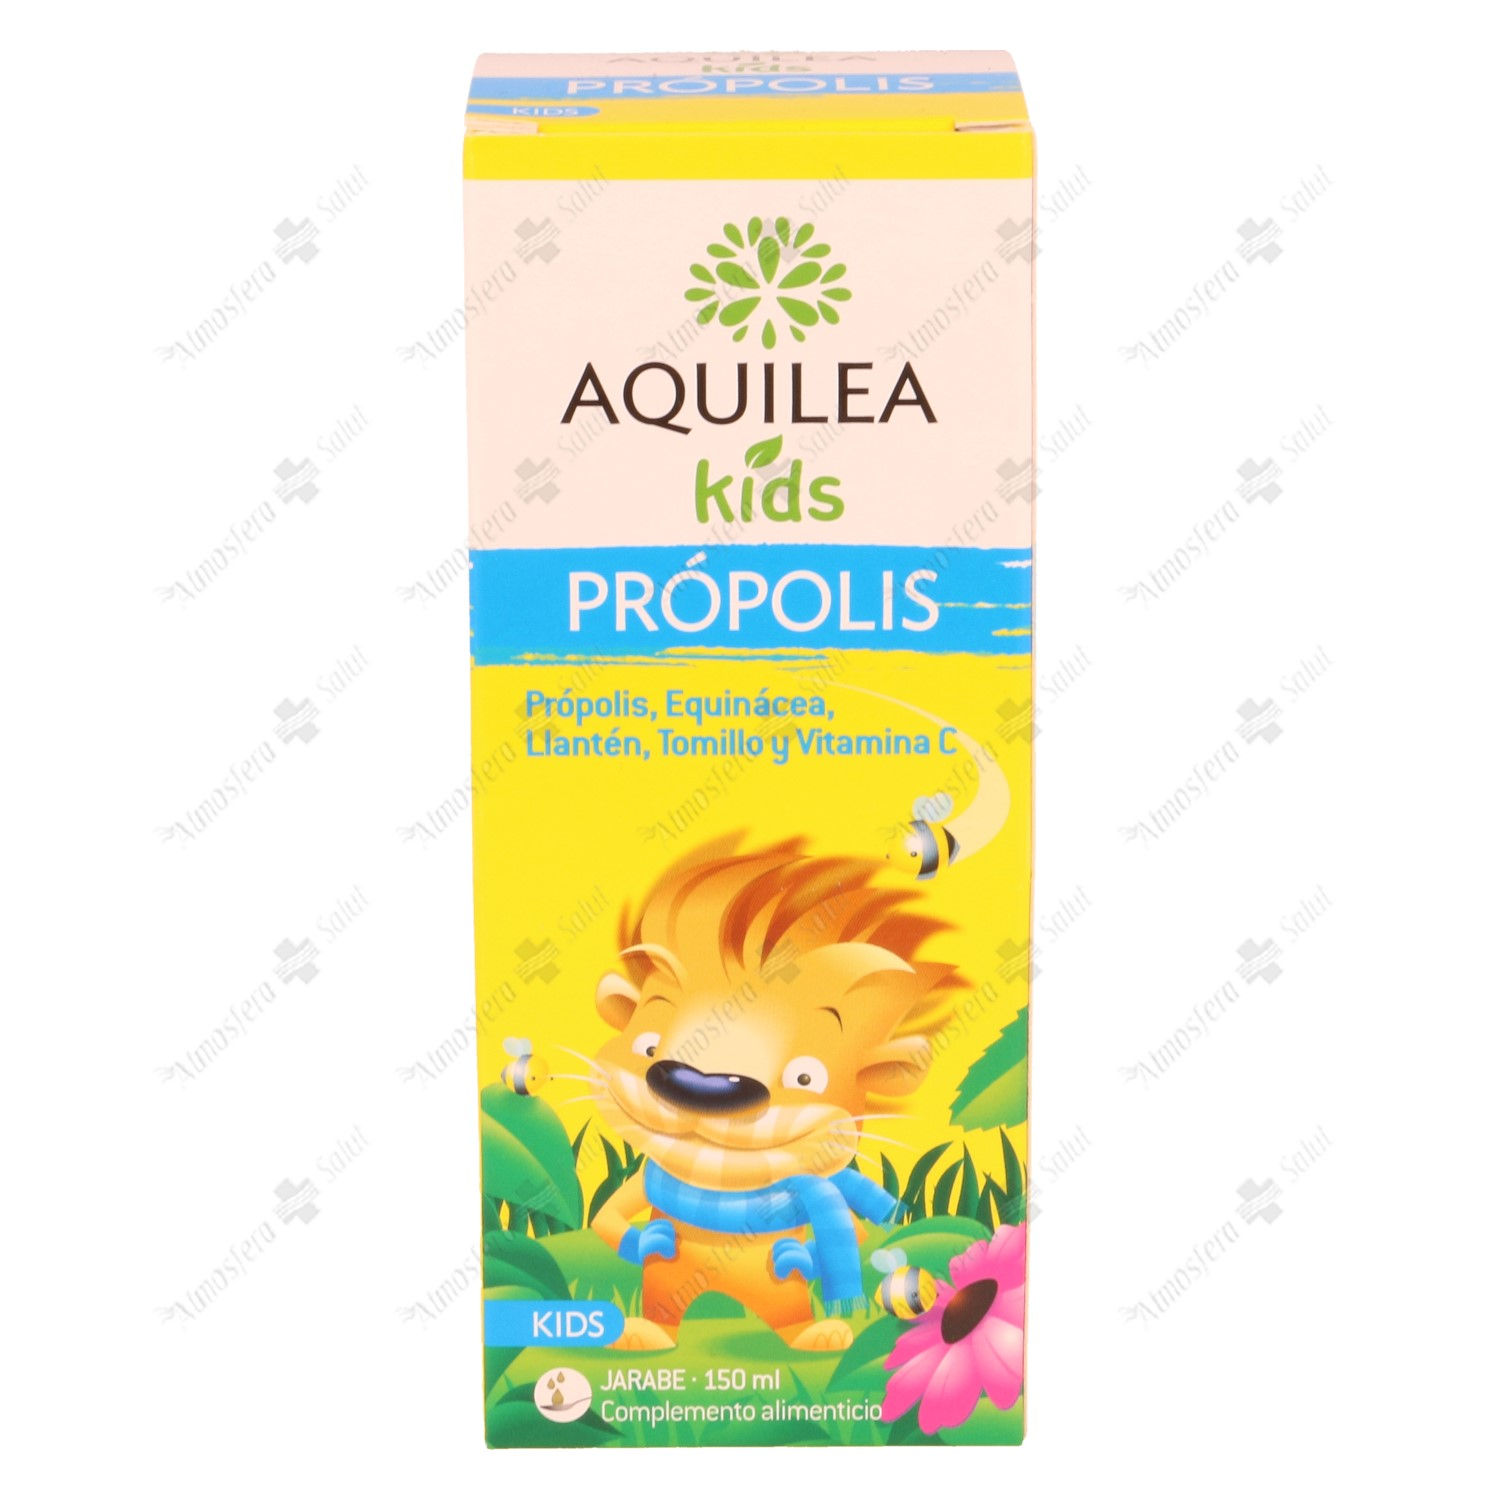 AQUILEA PROPOLIS KIDS 150 ML- 161595 -  URIACH-AQ OTC